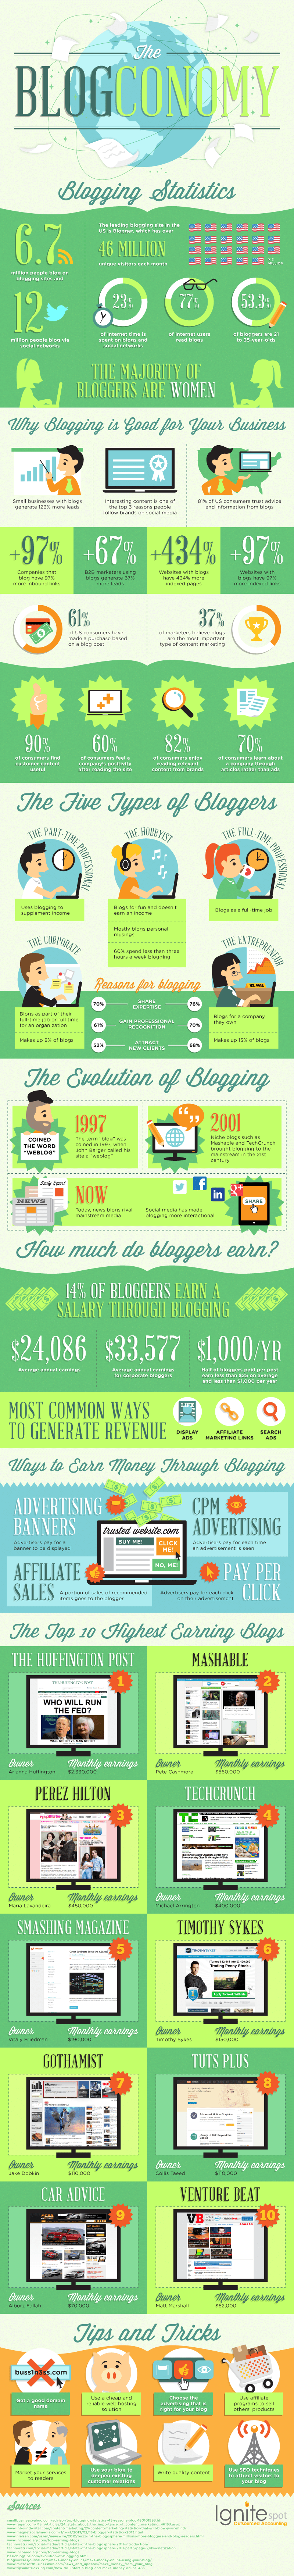 Why Blogging Is The Easiest Way To Market Your Business